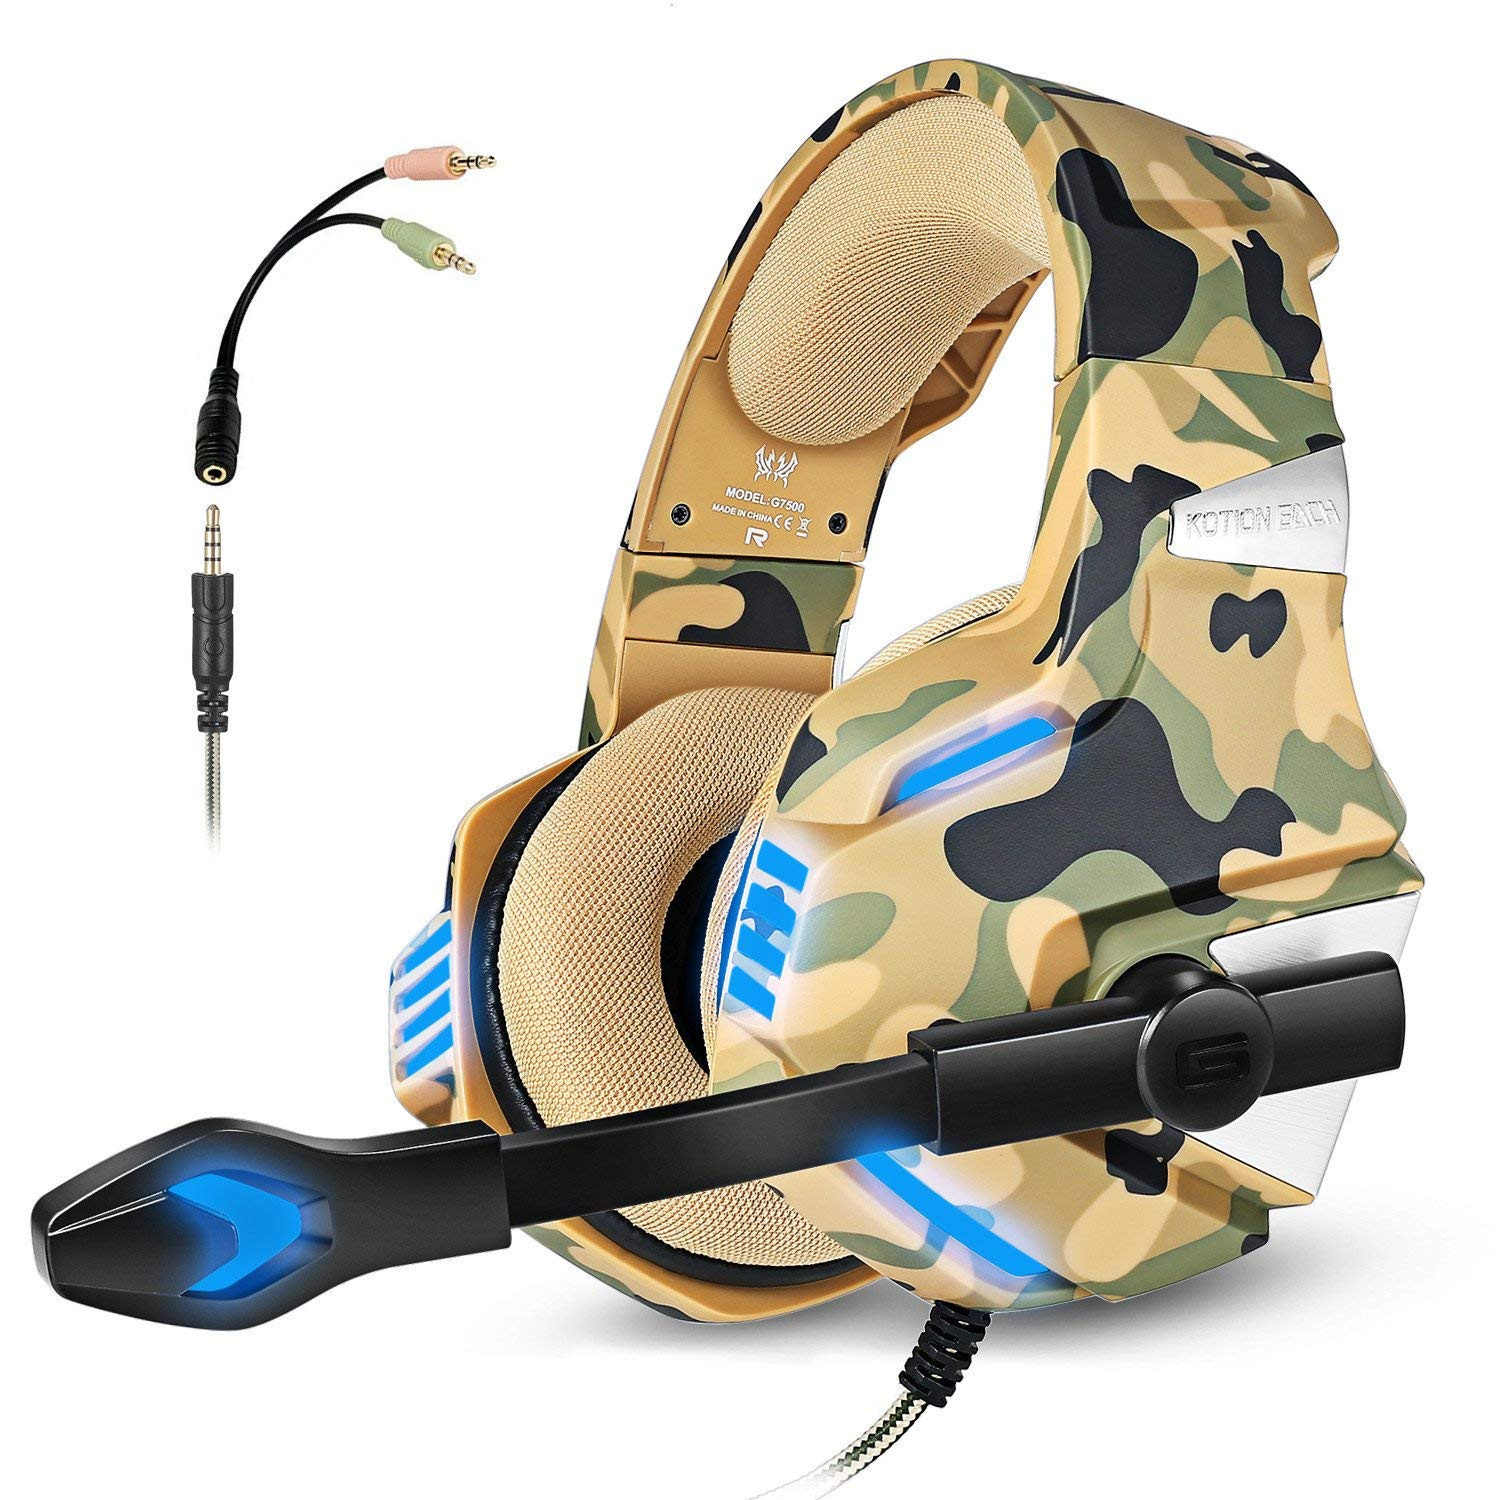 f00f9a8d8f4 Gaming Headset with Mic for PS4 Xbox One Controller PC Switch Tablet  Smartphone, Camouflage Stereo Over Ear Headphones Bass Surround Noise  Canceling ...